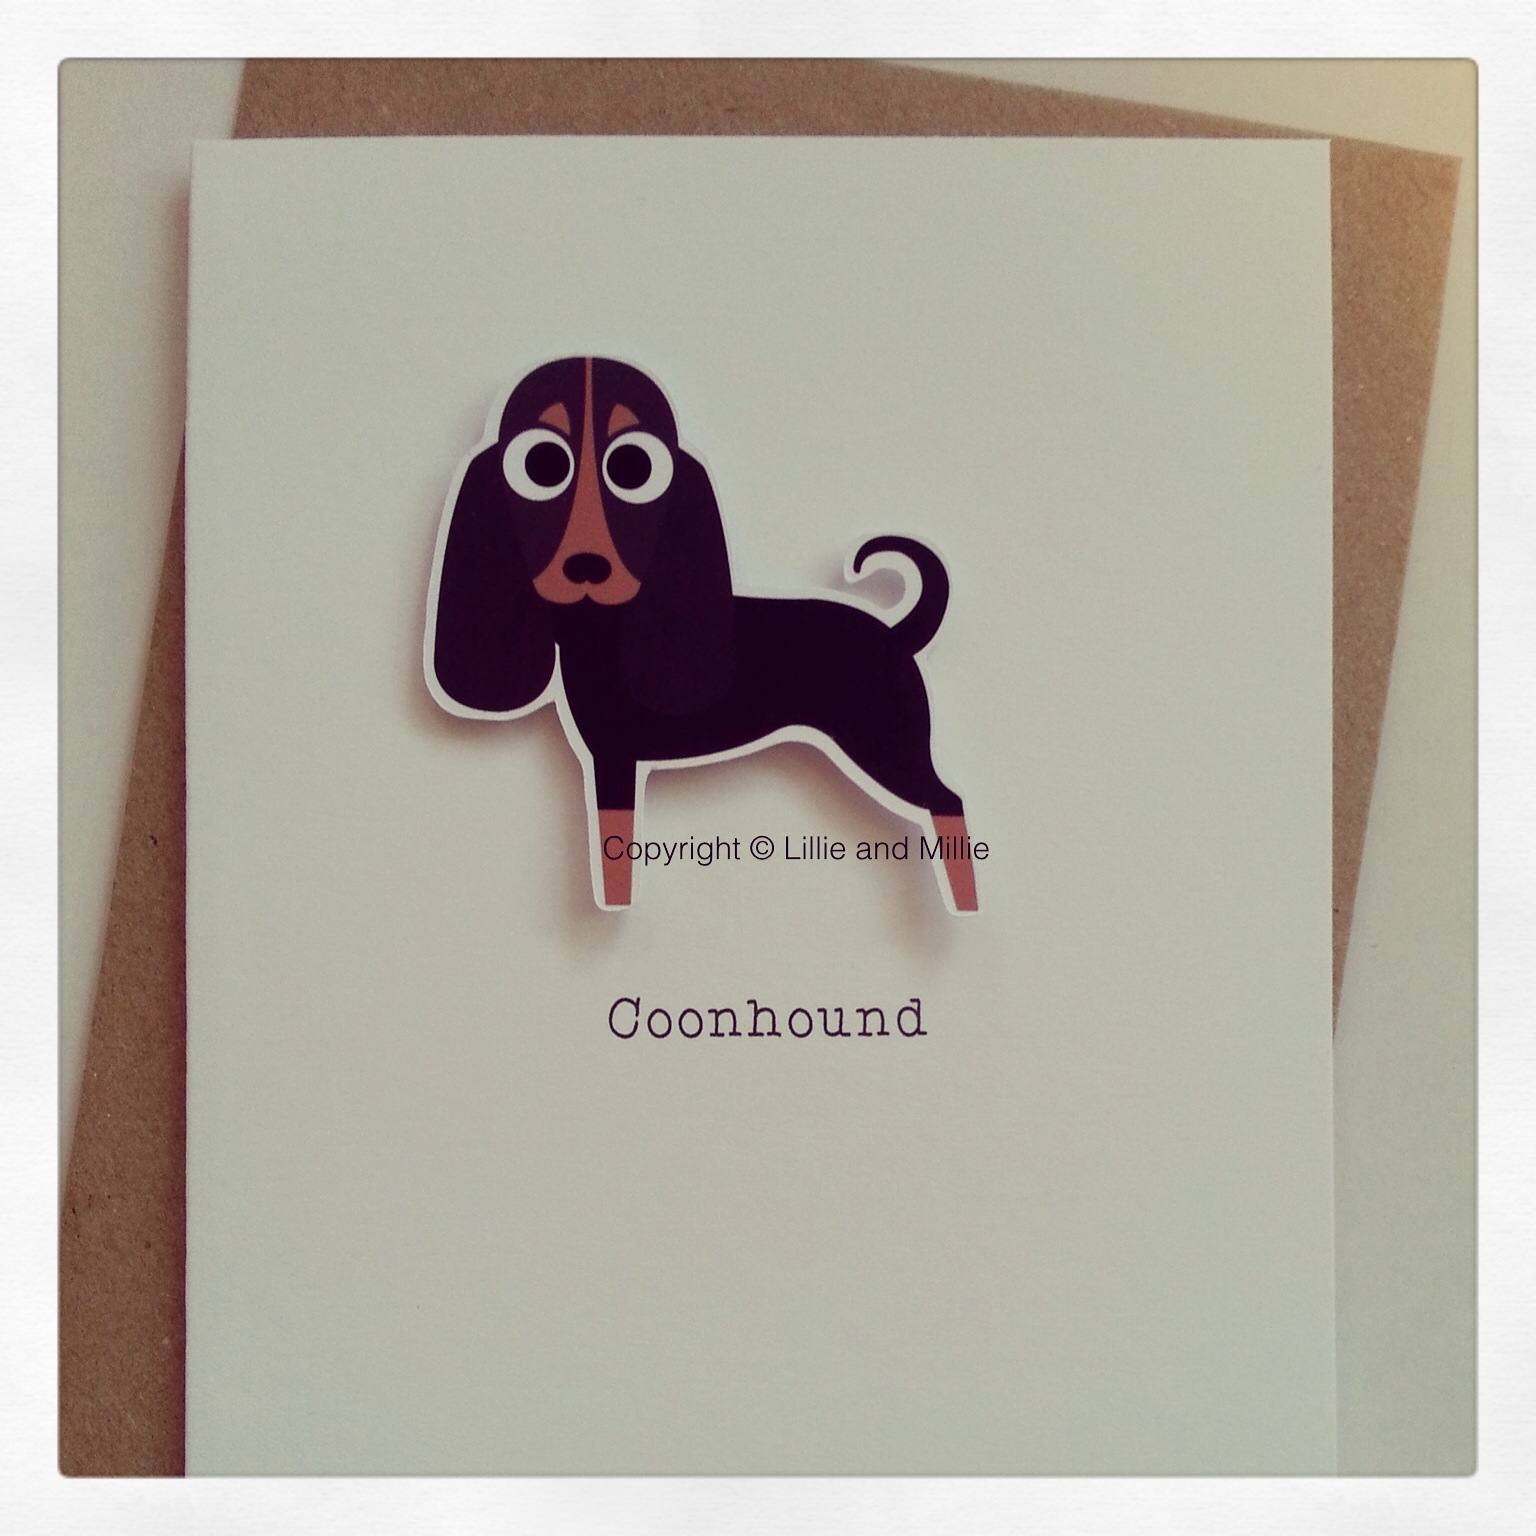 Cute and Cuddly Coonhound Greetings Card